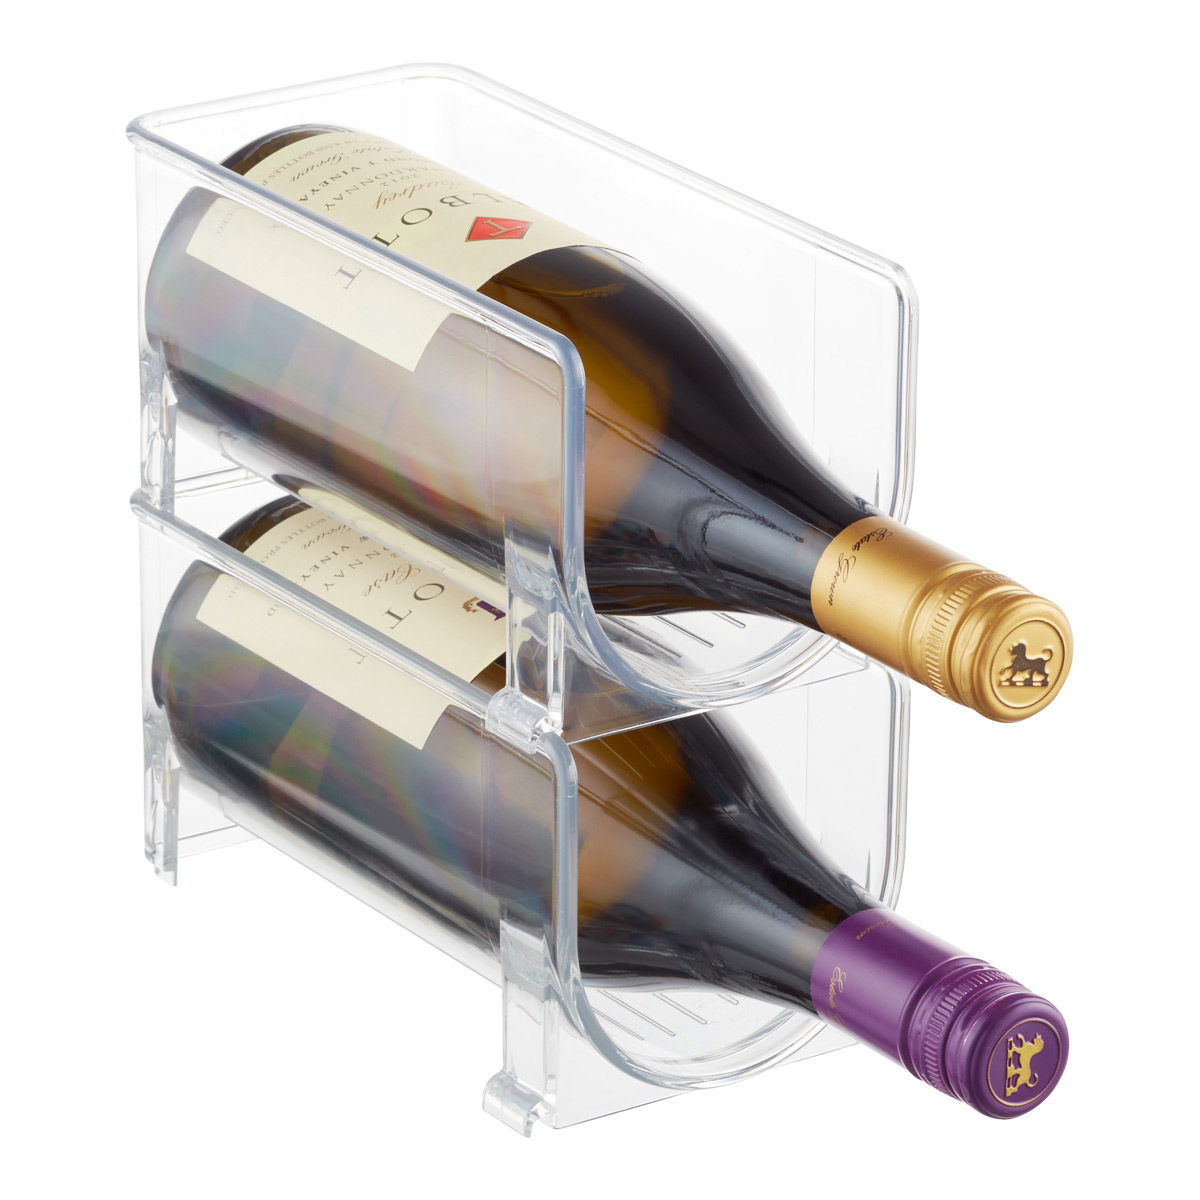 iDesign Linus Fridge Bins Wine Holder